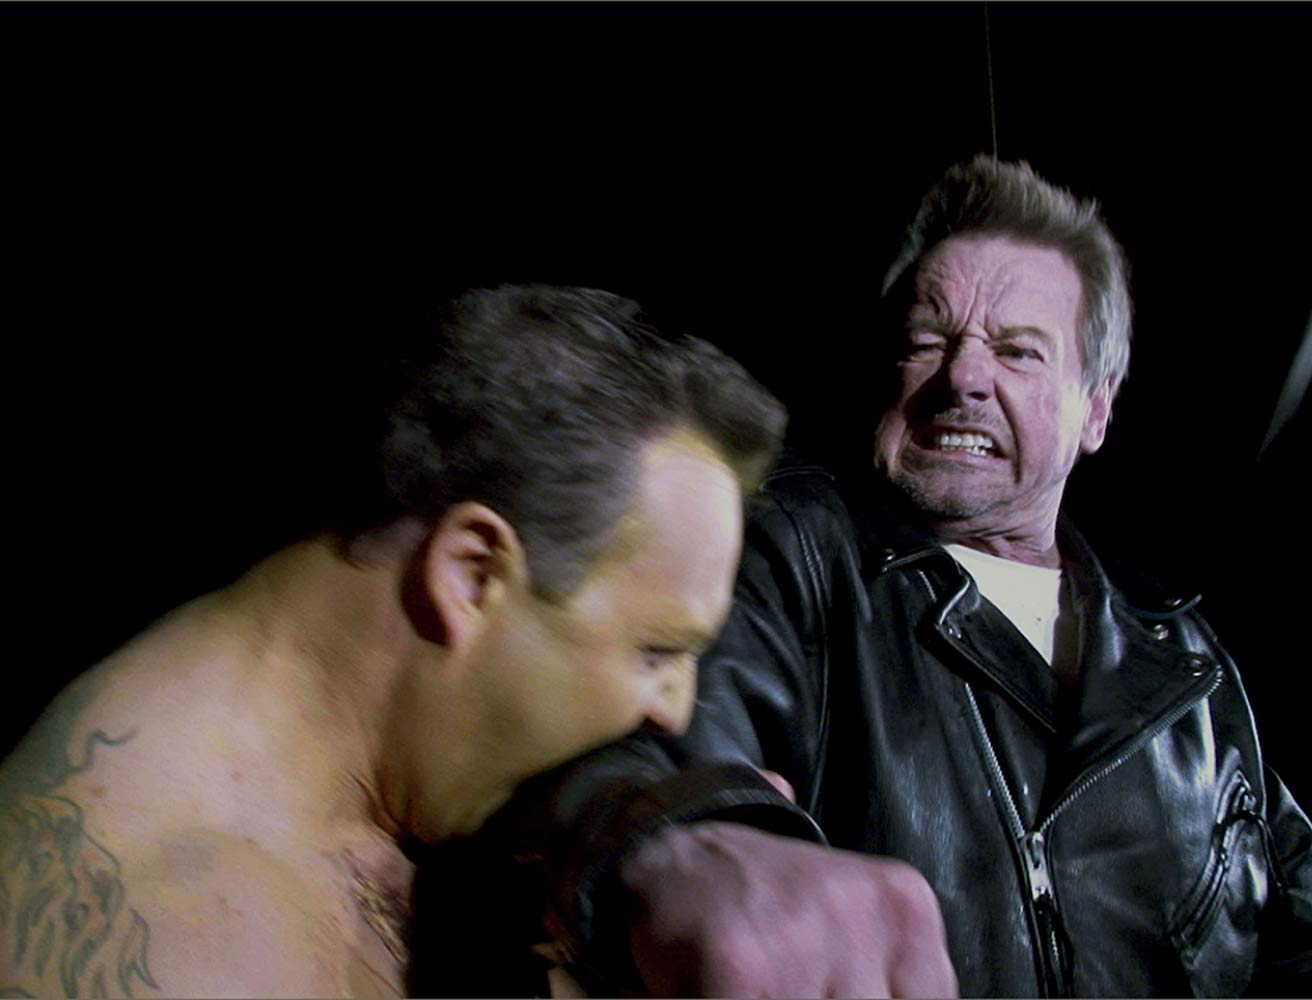 Rowdy Roddy Piper vs the zombies in Pro Wrestlers vs Zombies (2014)